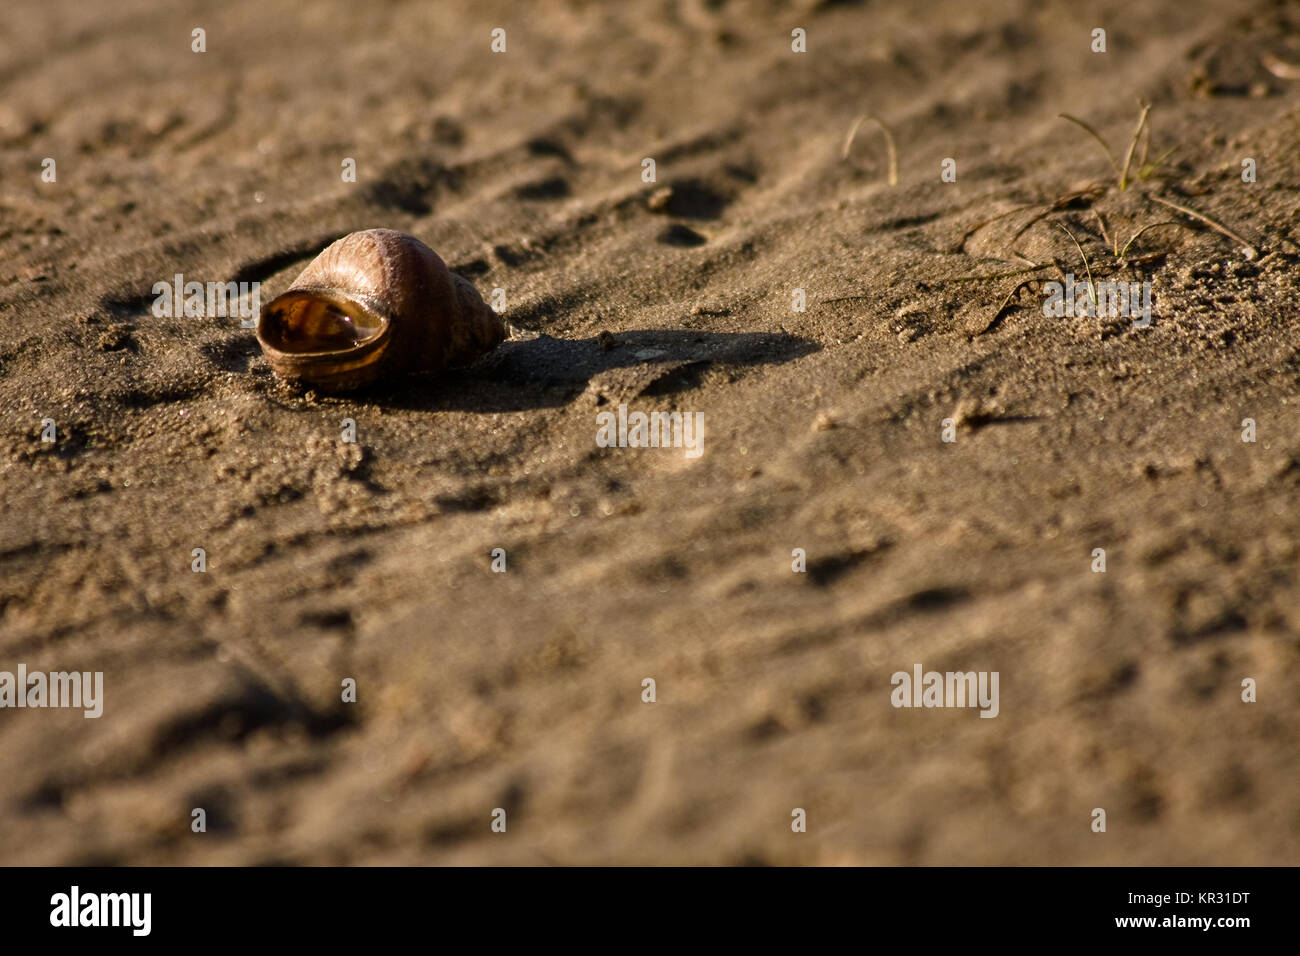 empty shell on send on a beach - Stock Image